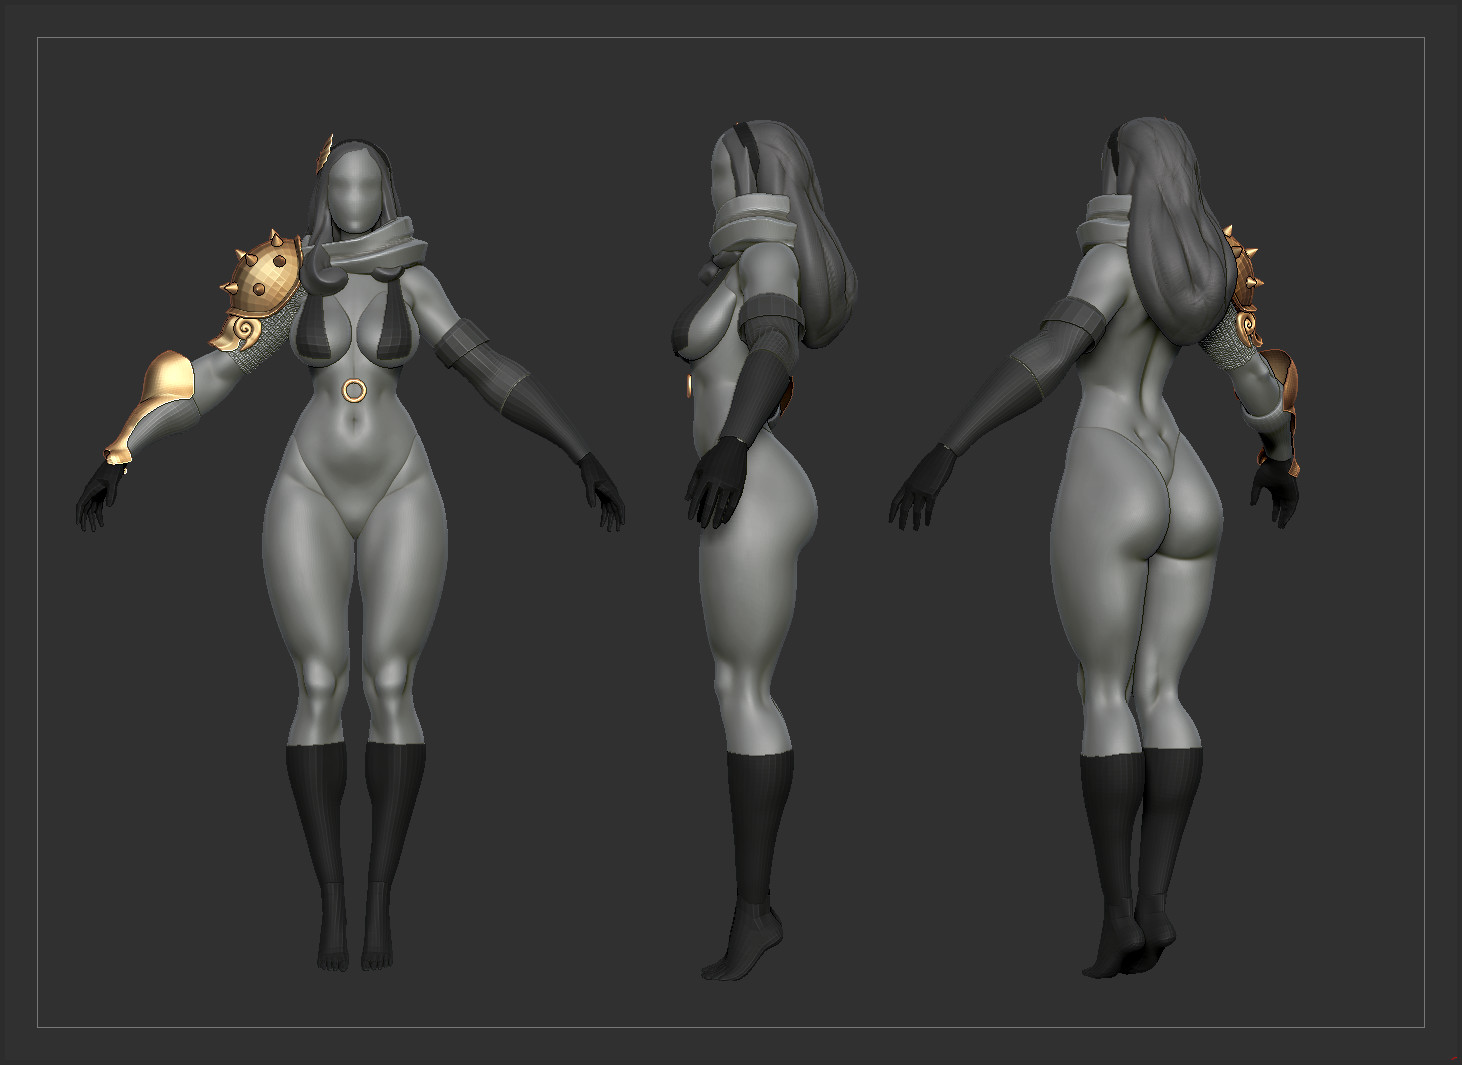 Mercurial forge mercurial forge zbrush 2018 03 27 11 09 24